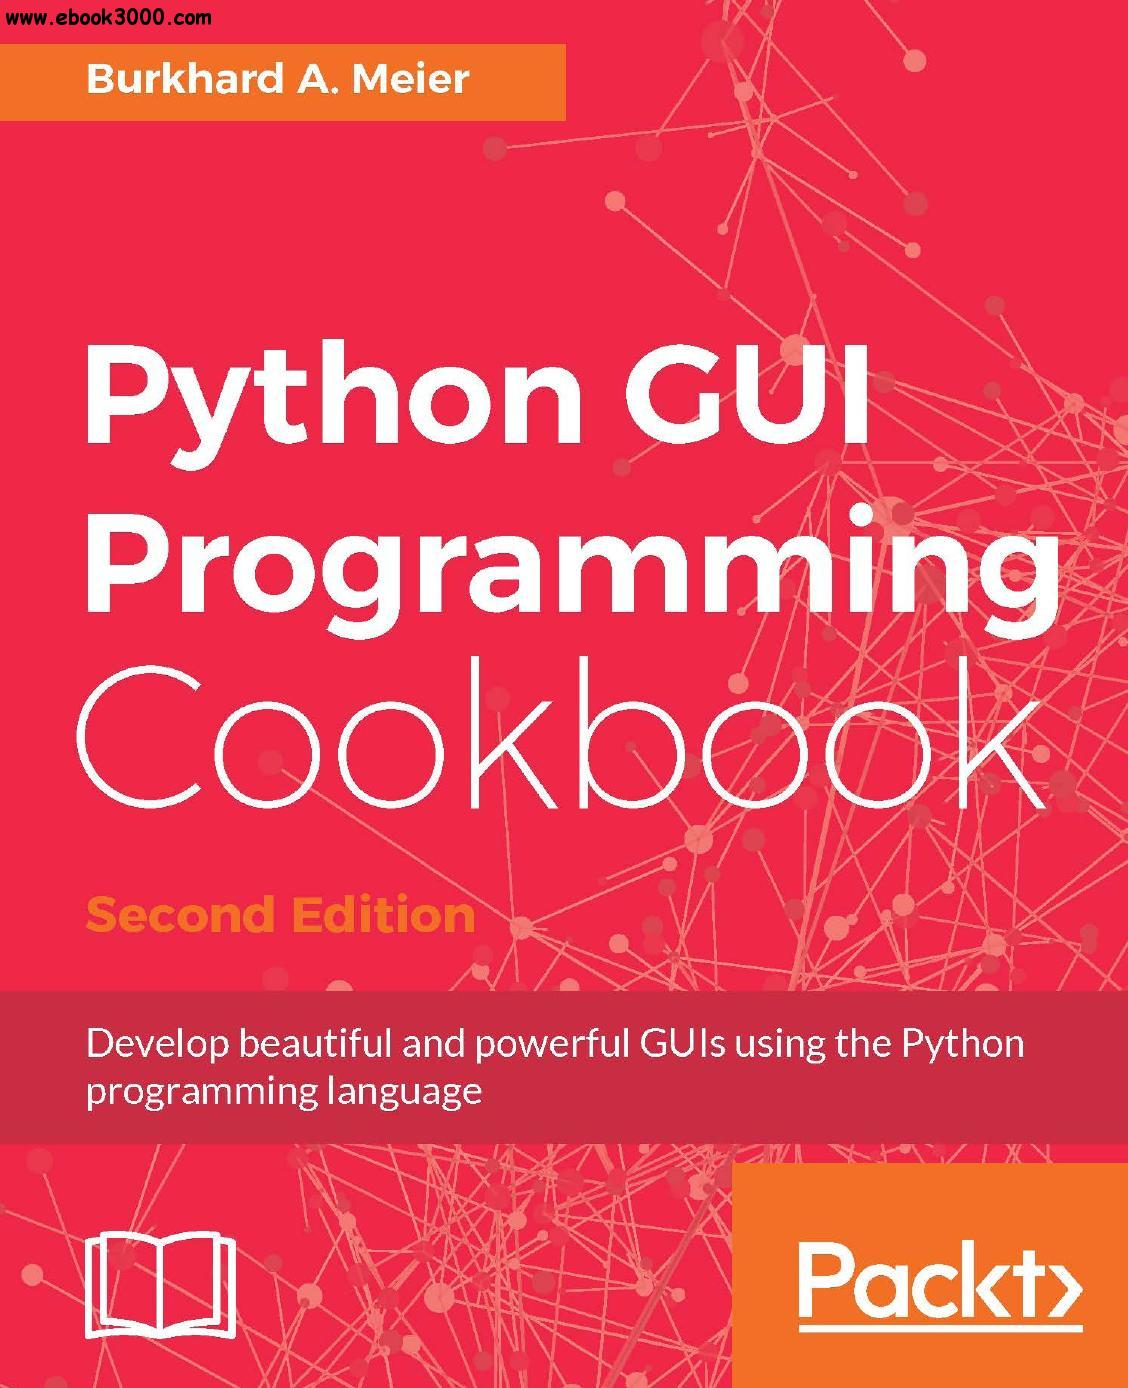 Python GUI Programming Cookbook, 2nd Edition